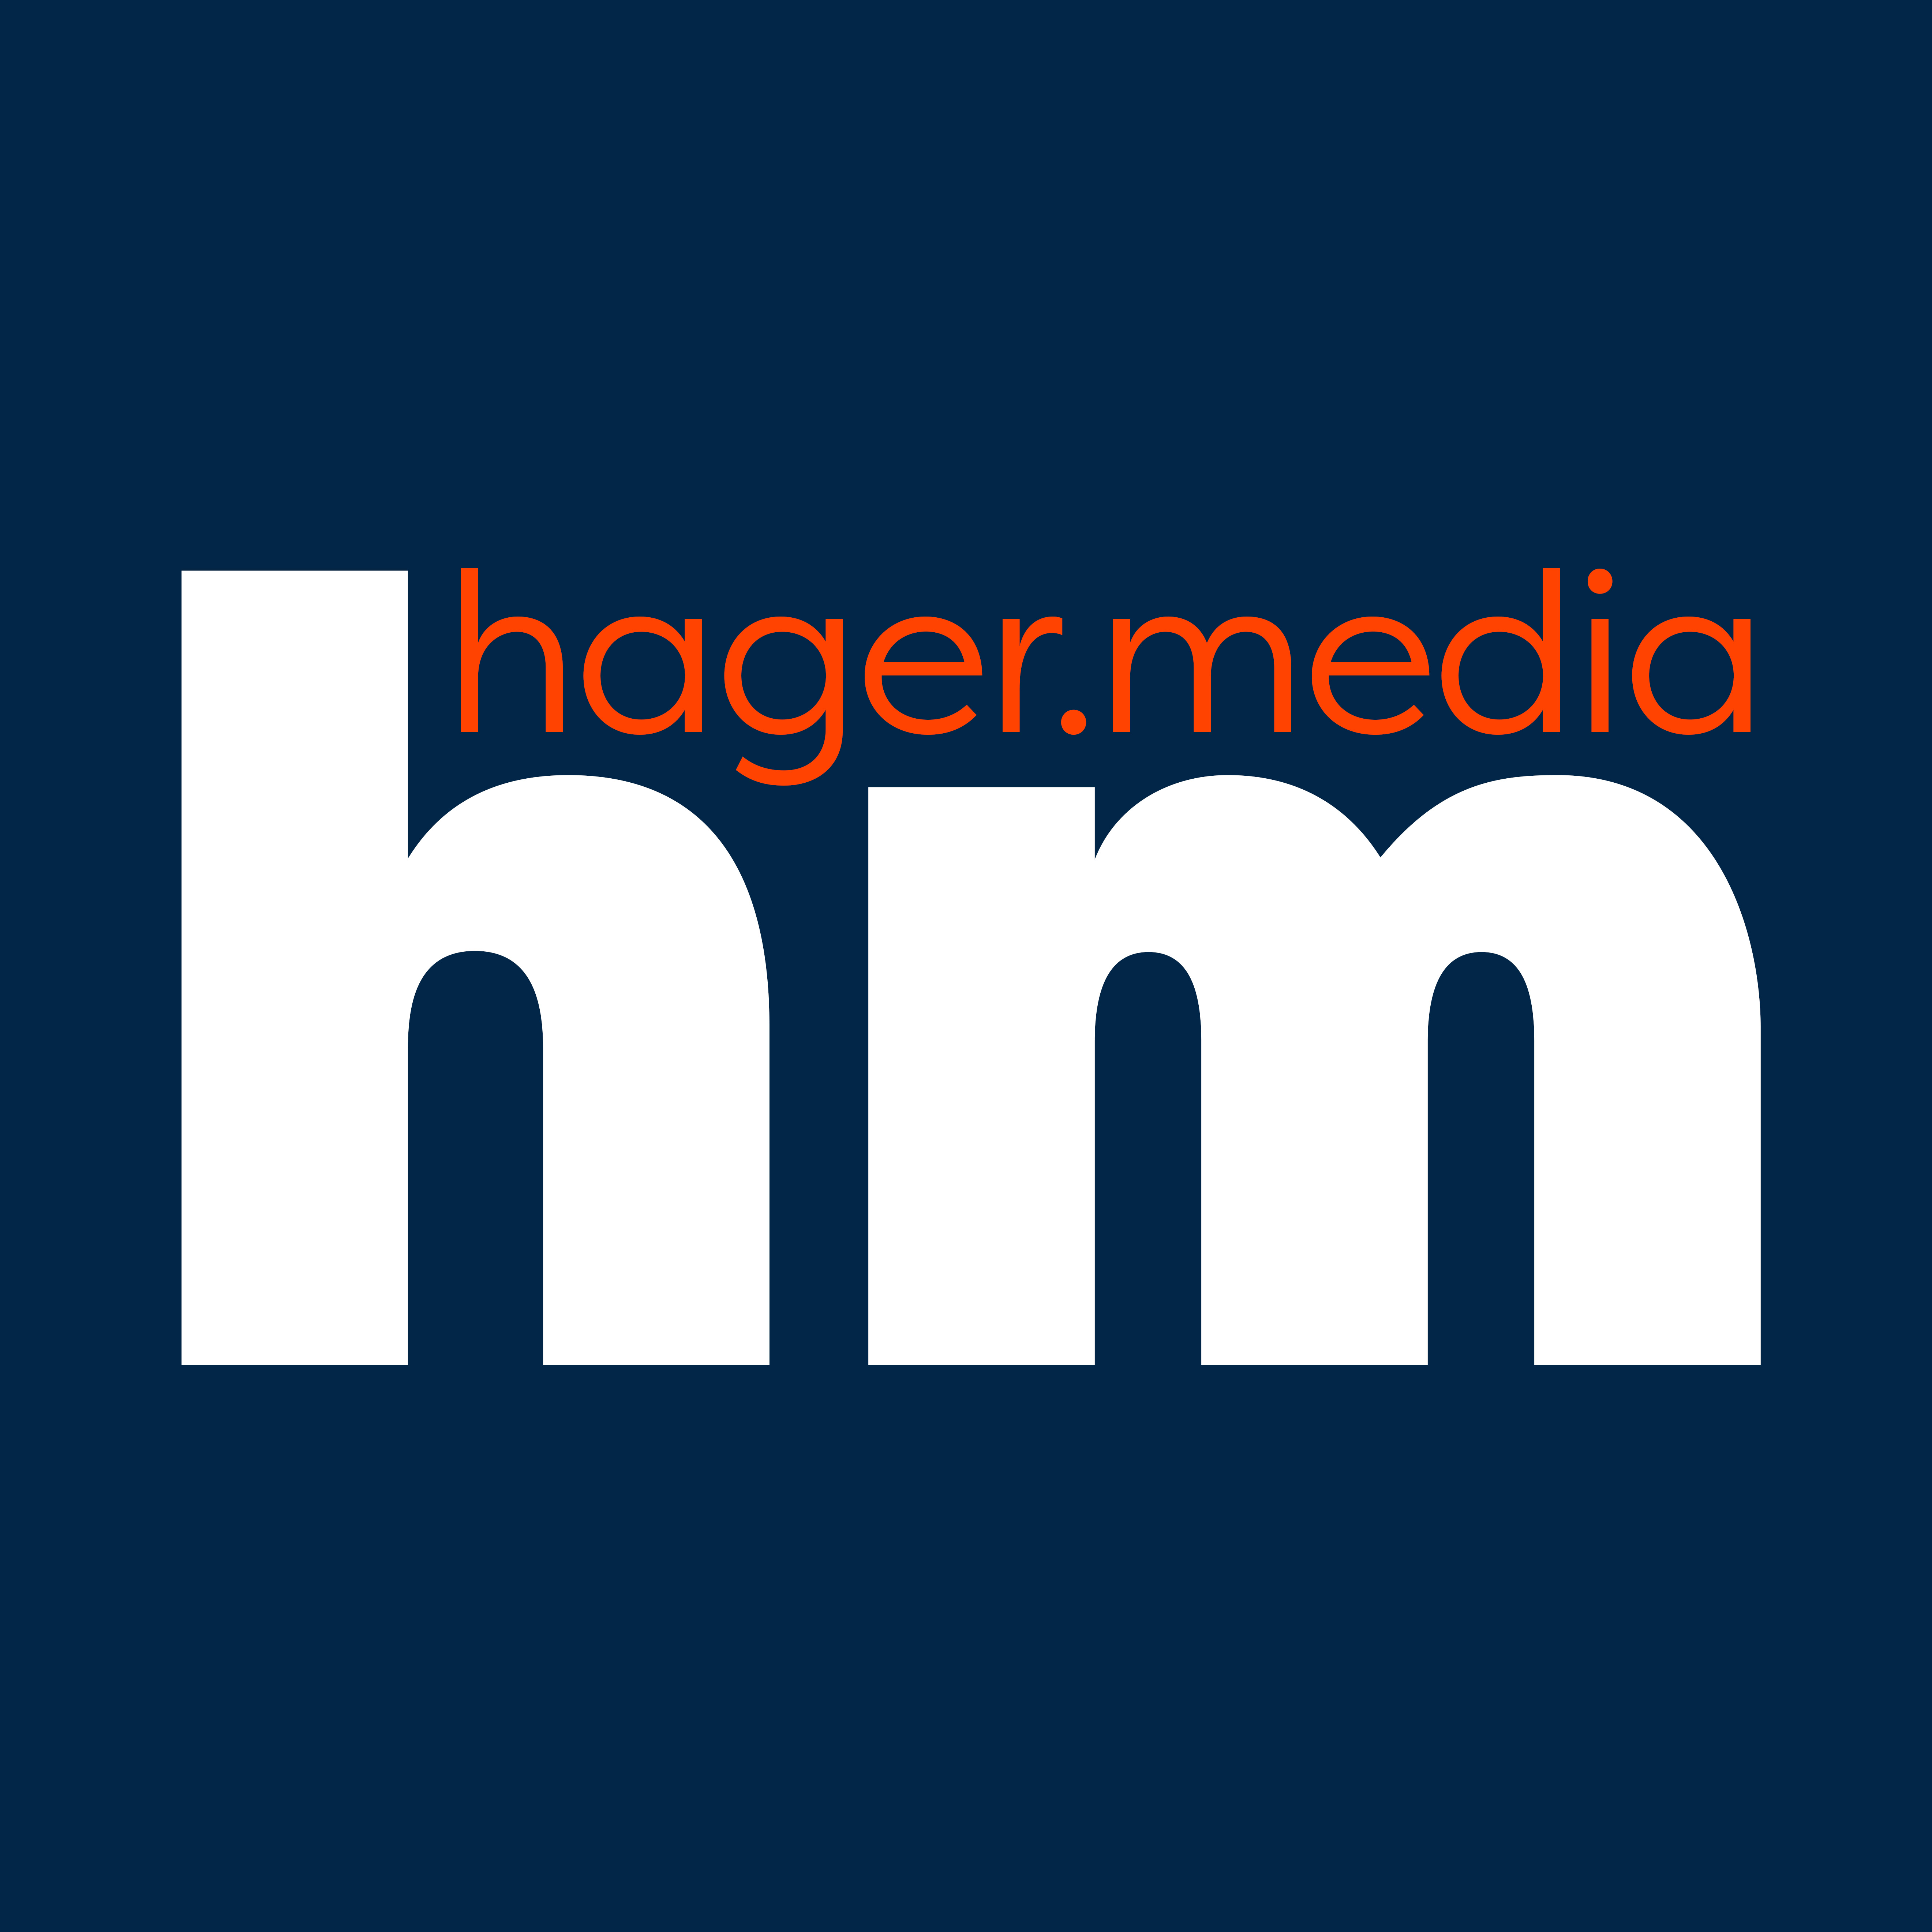 hager.media online-marketing and SEO agency